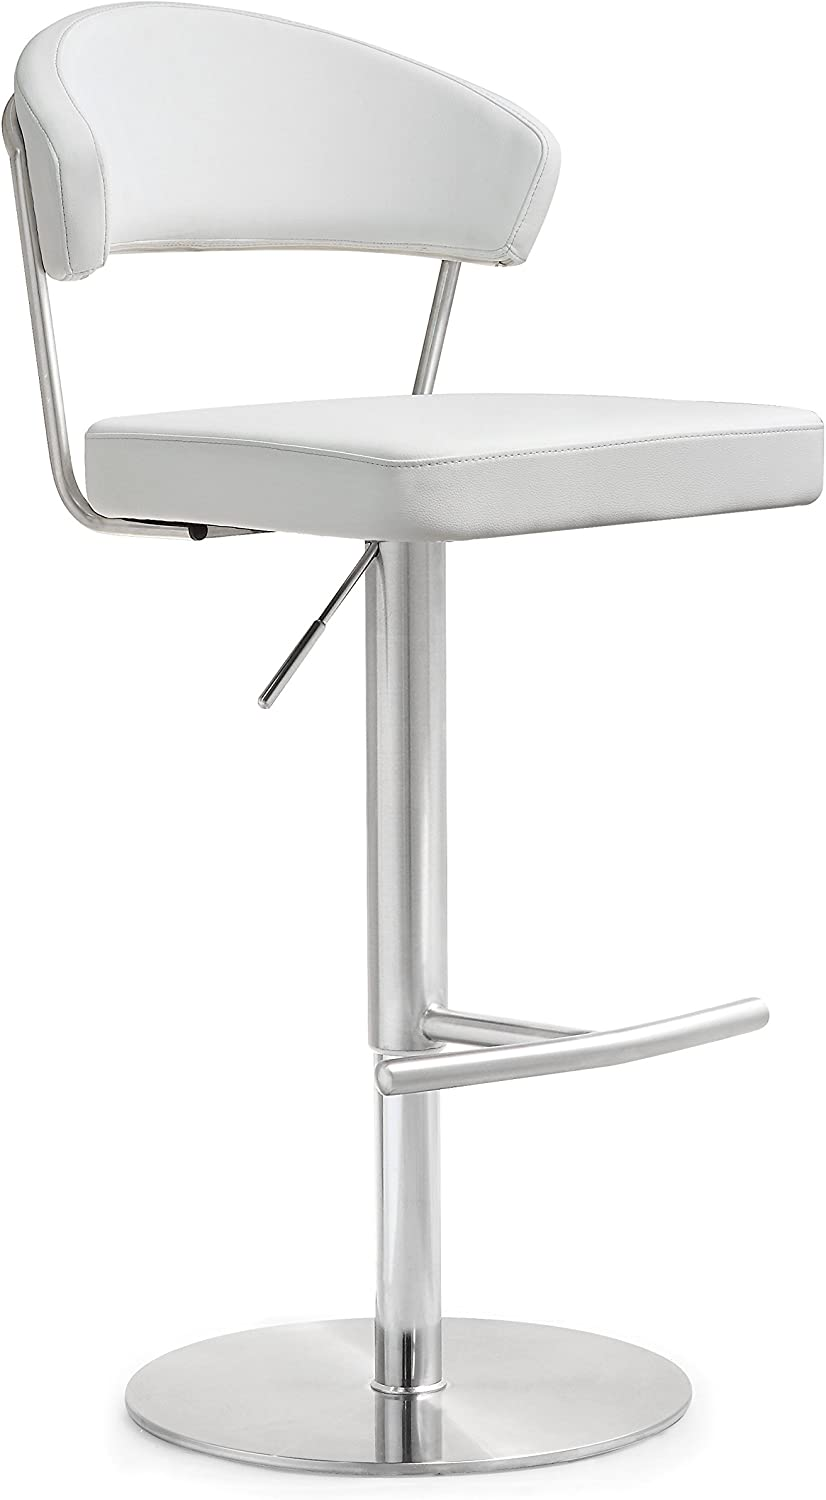 Tov Furniture Cosmo Stainless Steel Barstool, White